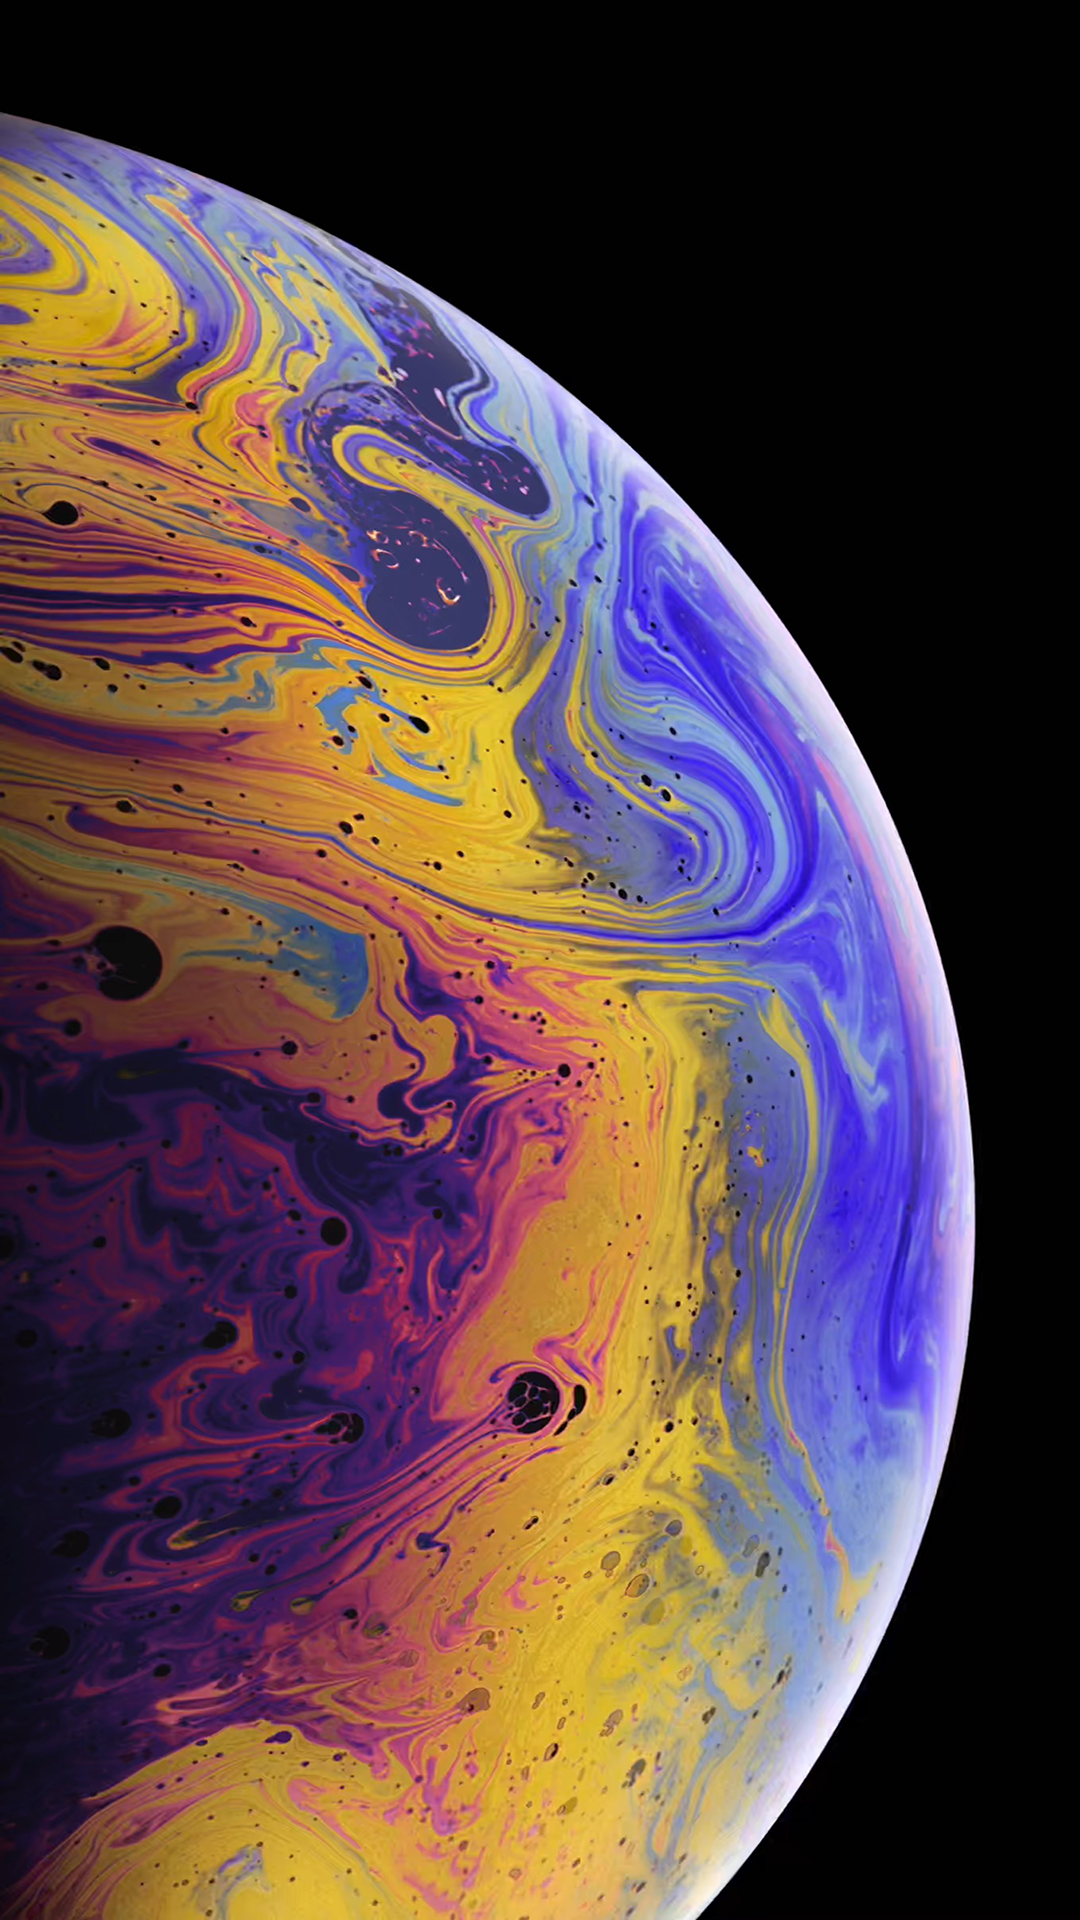 Iphone Xs Max Earth Wallpapers Apple Wallpaper Iphone 4k Wallpaper Iphone Iphone Wallpaper Images